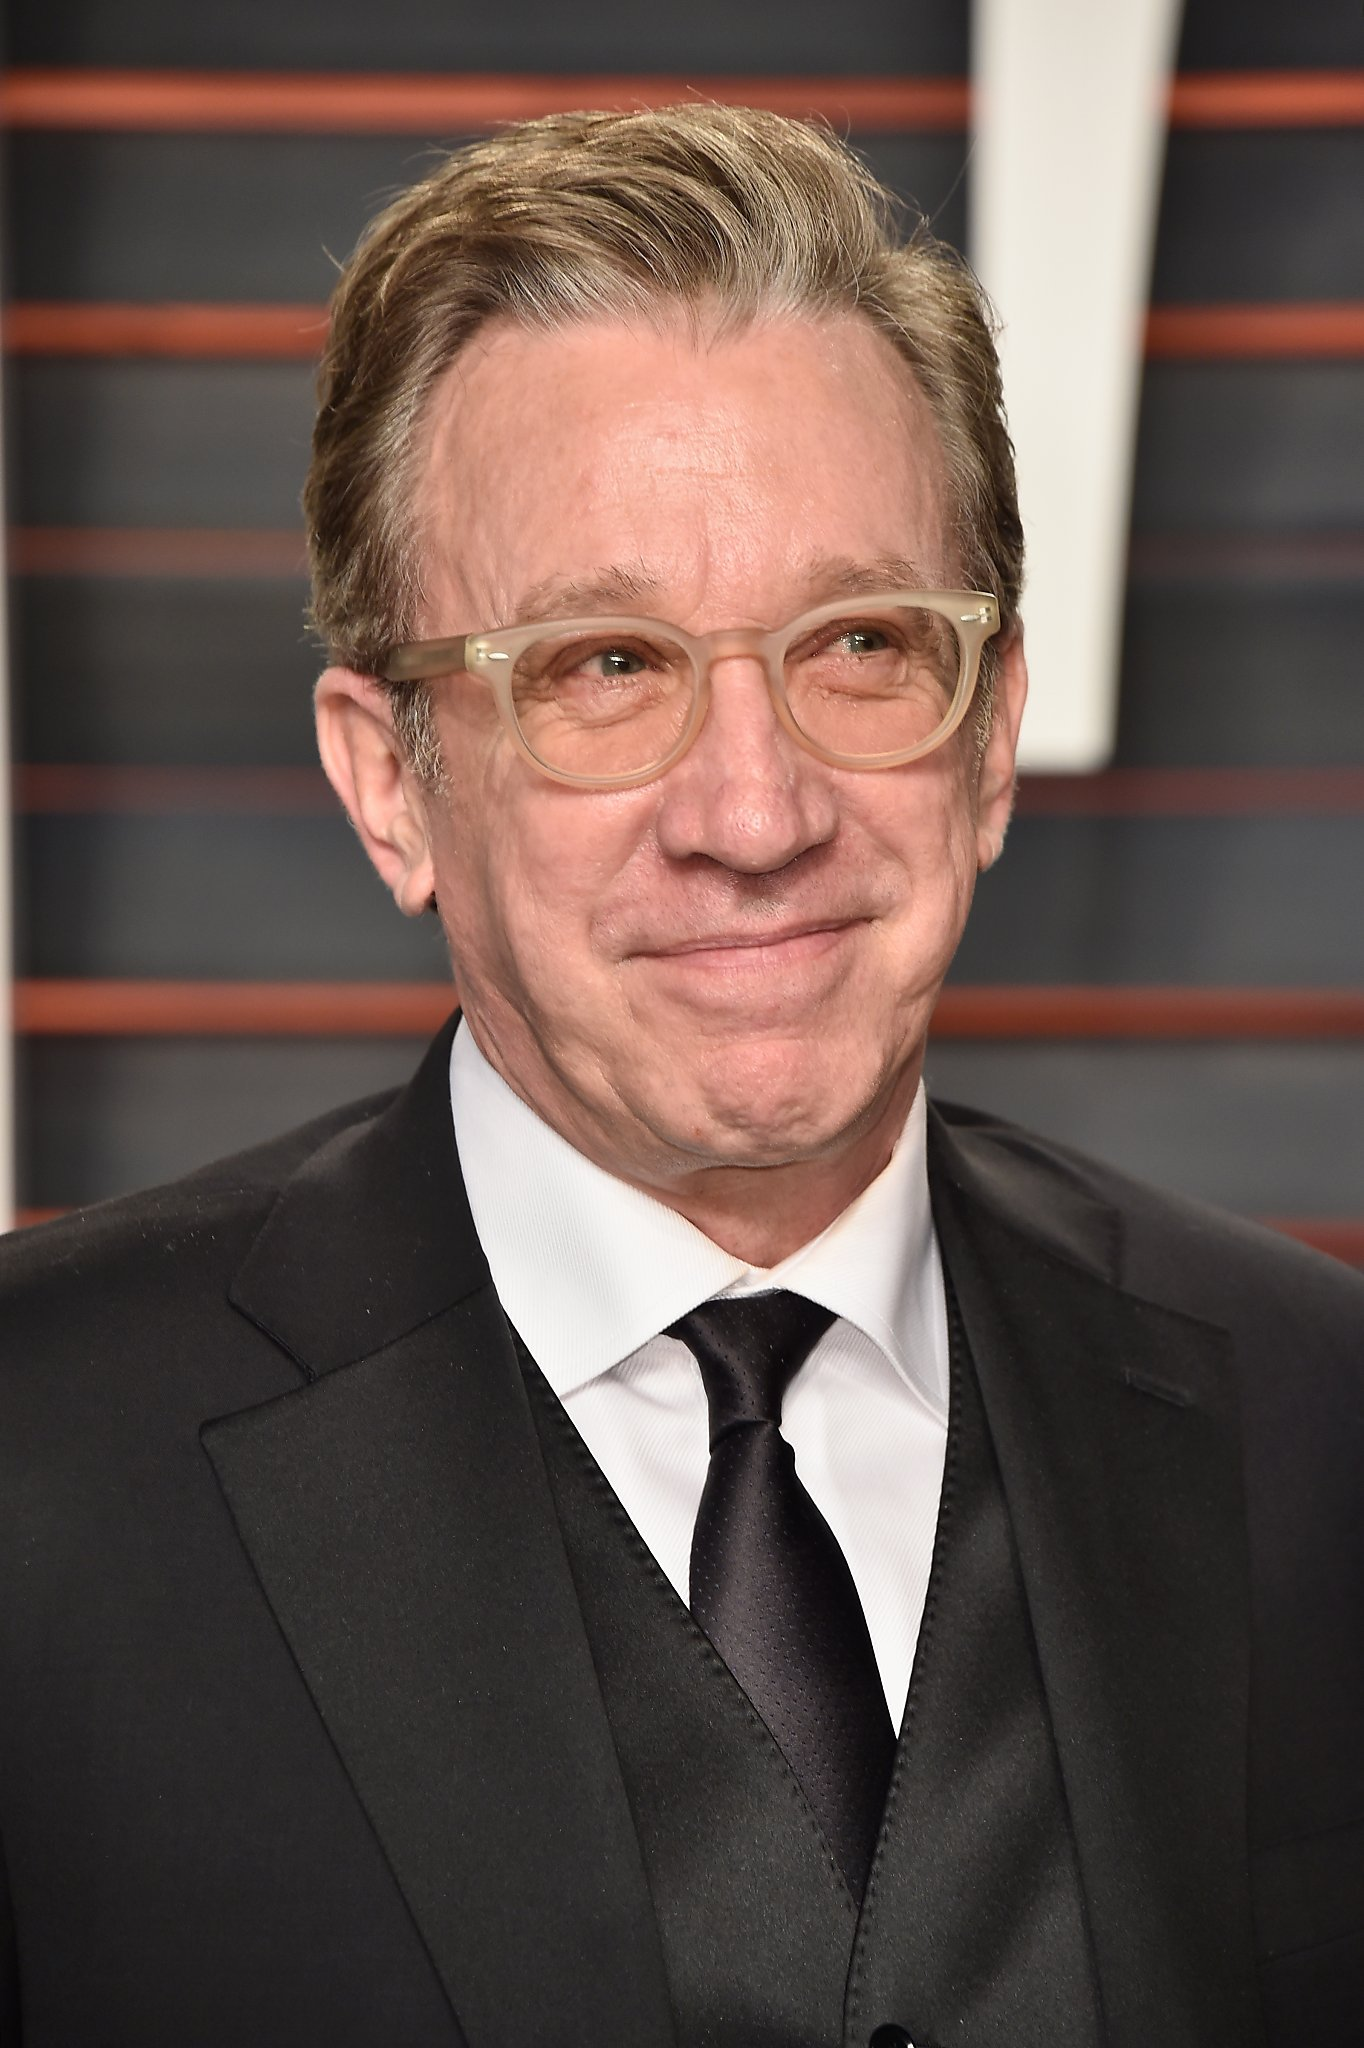 Tim Allen says being a non-liberal in Hollywood is like being in '30s Germany'